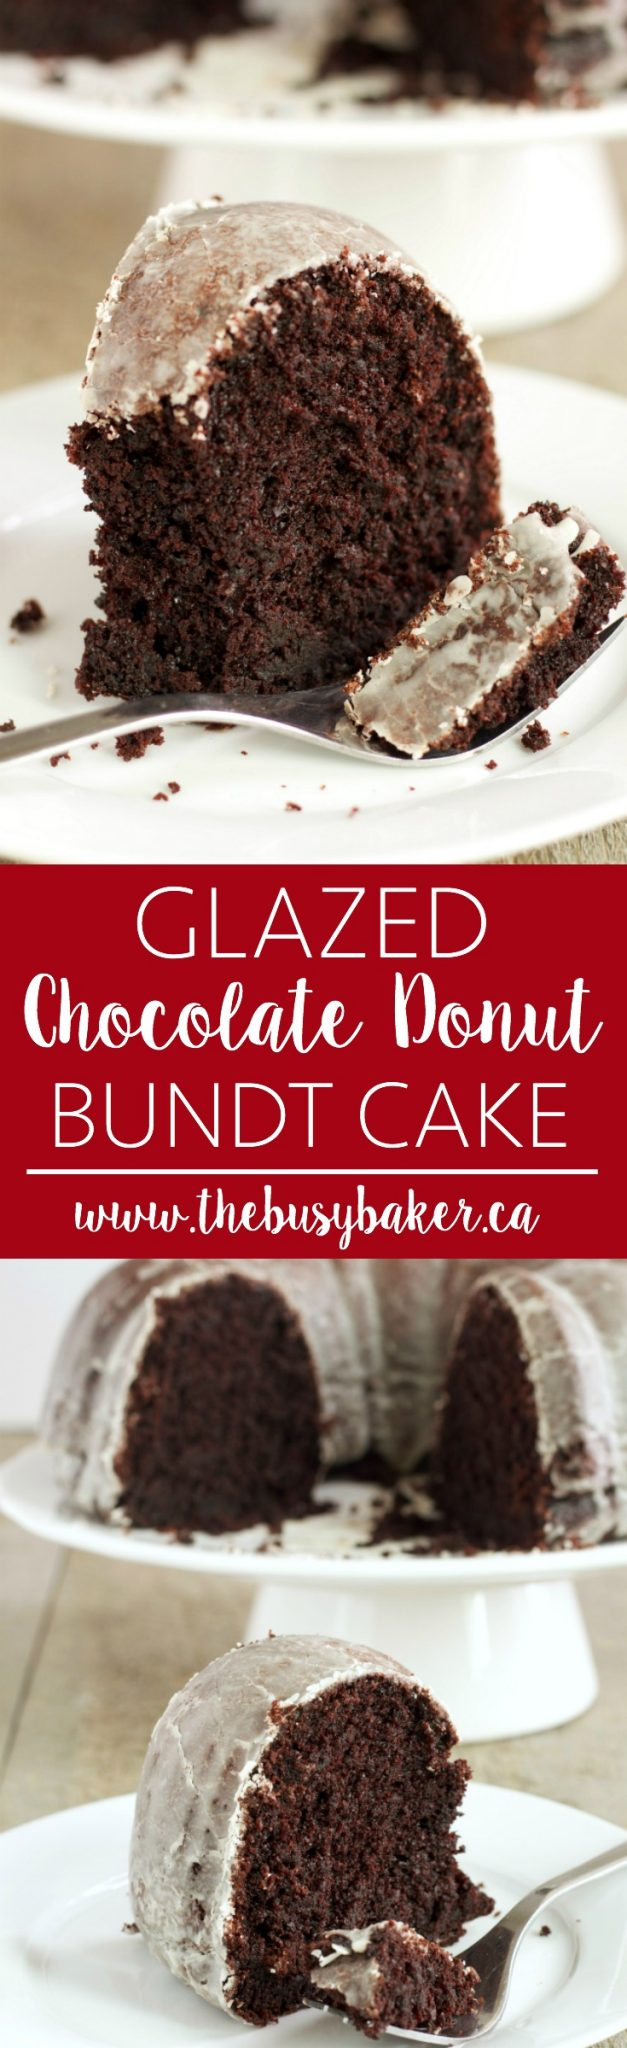 This Glazed Chocolate Donut Bundt Cake is everyone's favourite coffee shop donut in cake form with a delicious, sweet glaze! Recipe from thebusybaker.ca! via @busybakerblog